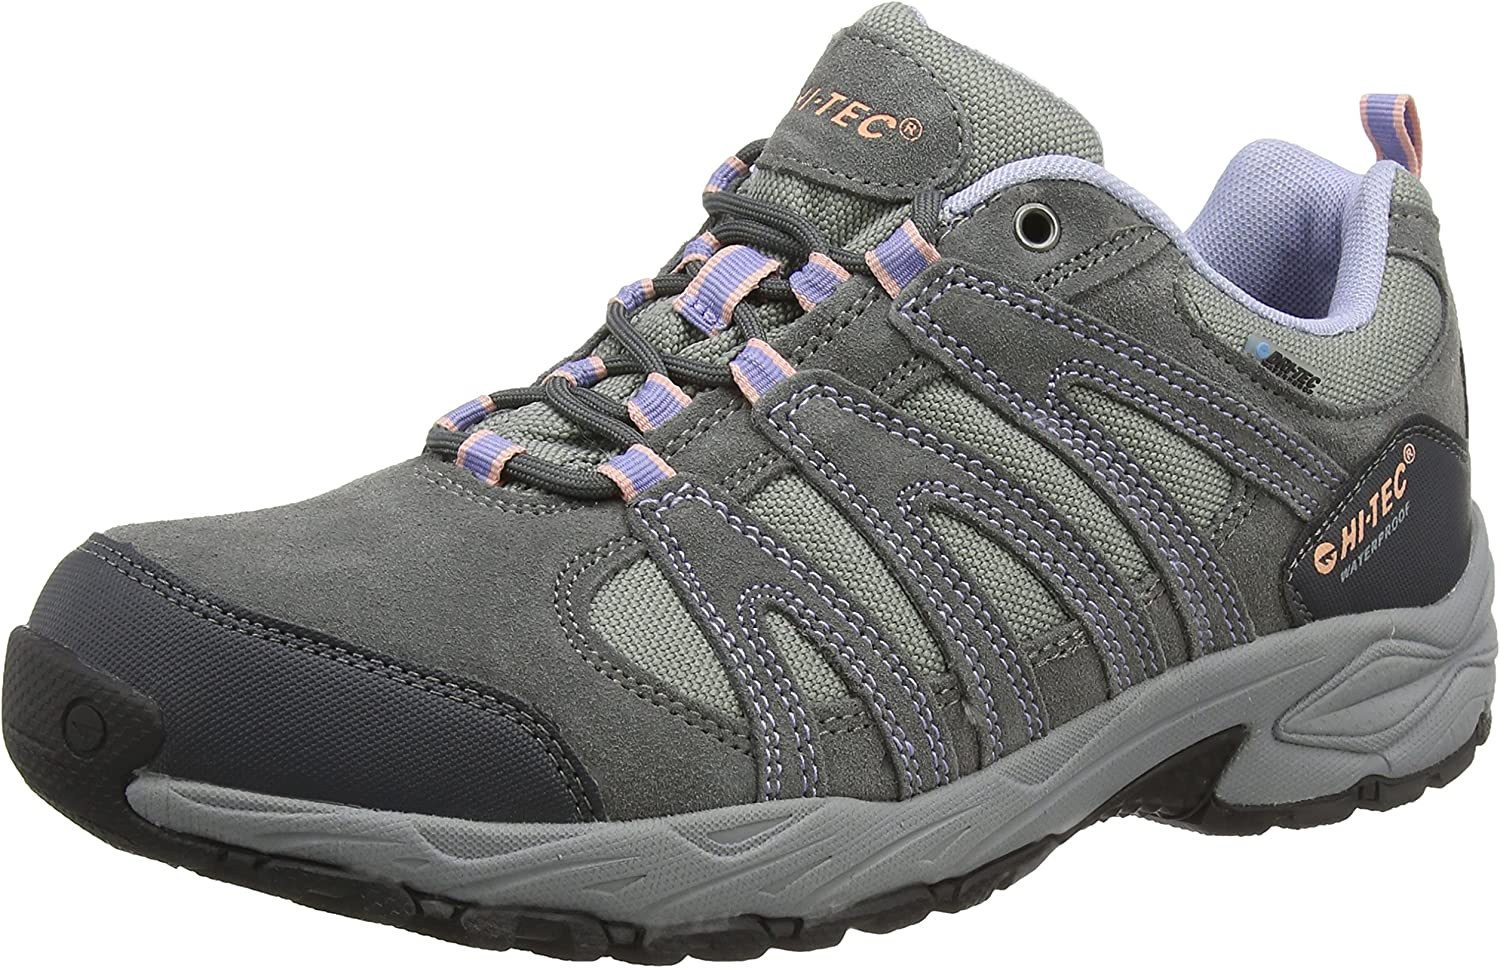 HiTec Women's Alto II Waterproof Low Rise Hiking shoes, Grey (Steel Charcoal Lustre), 7 AU